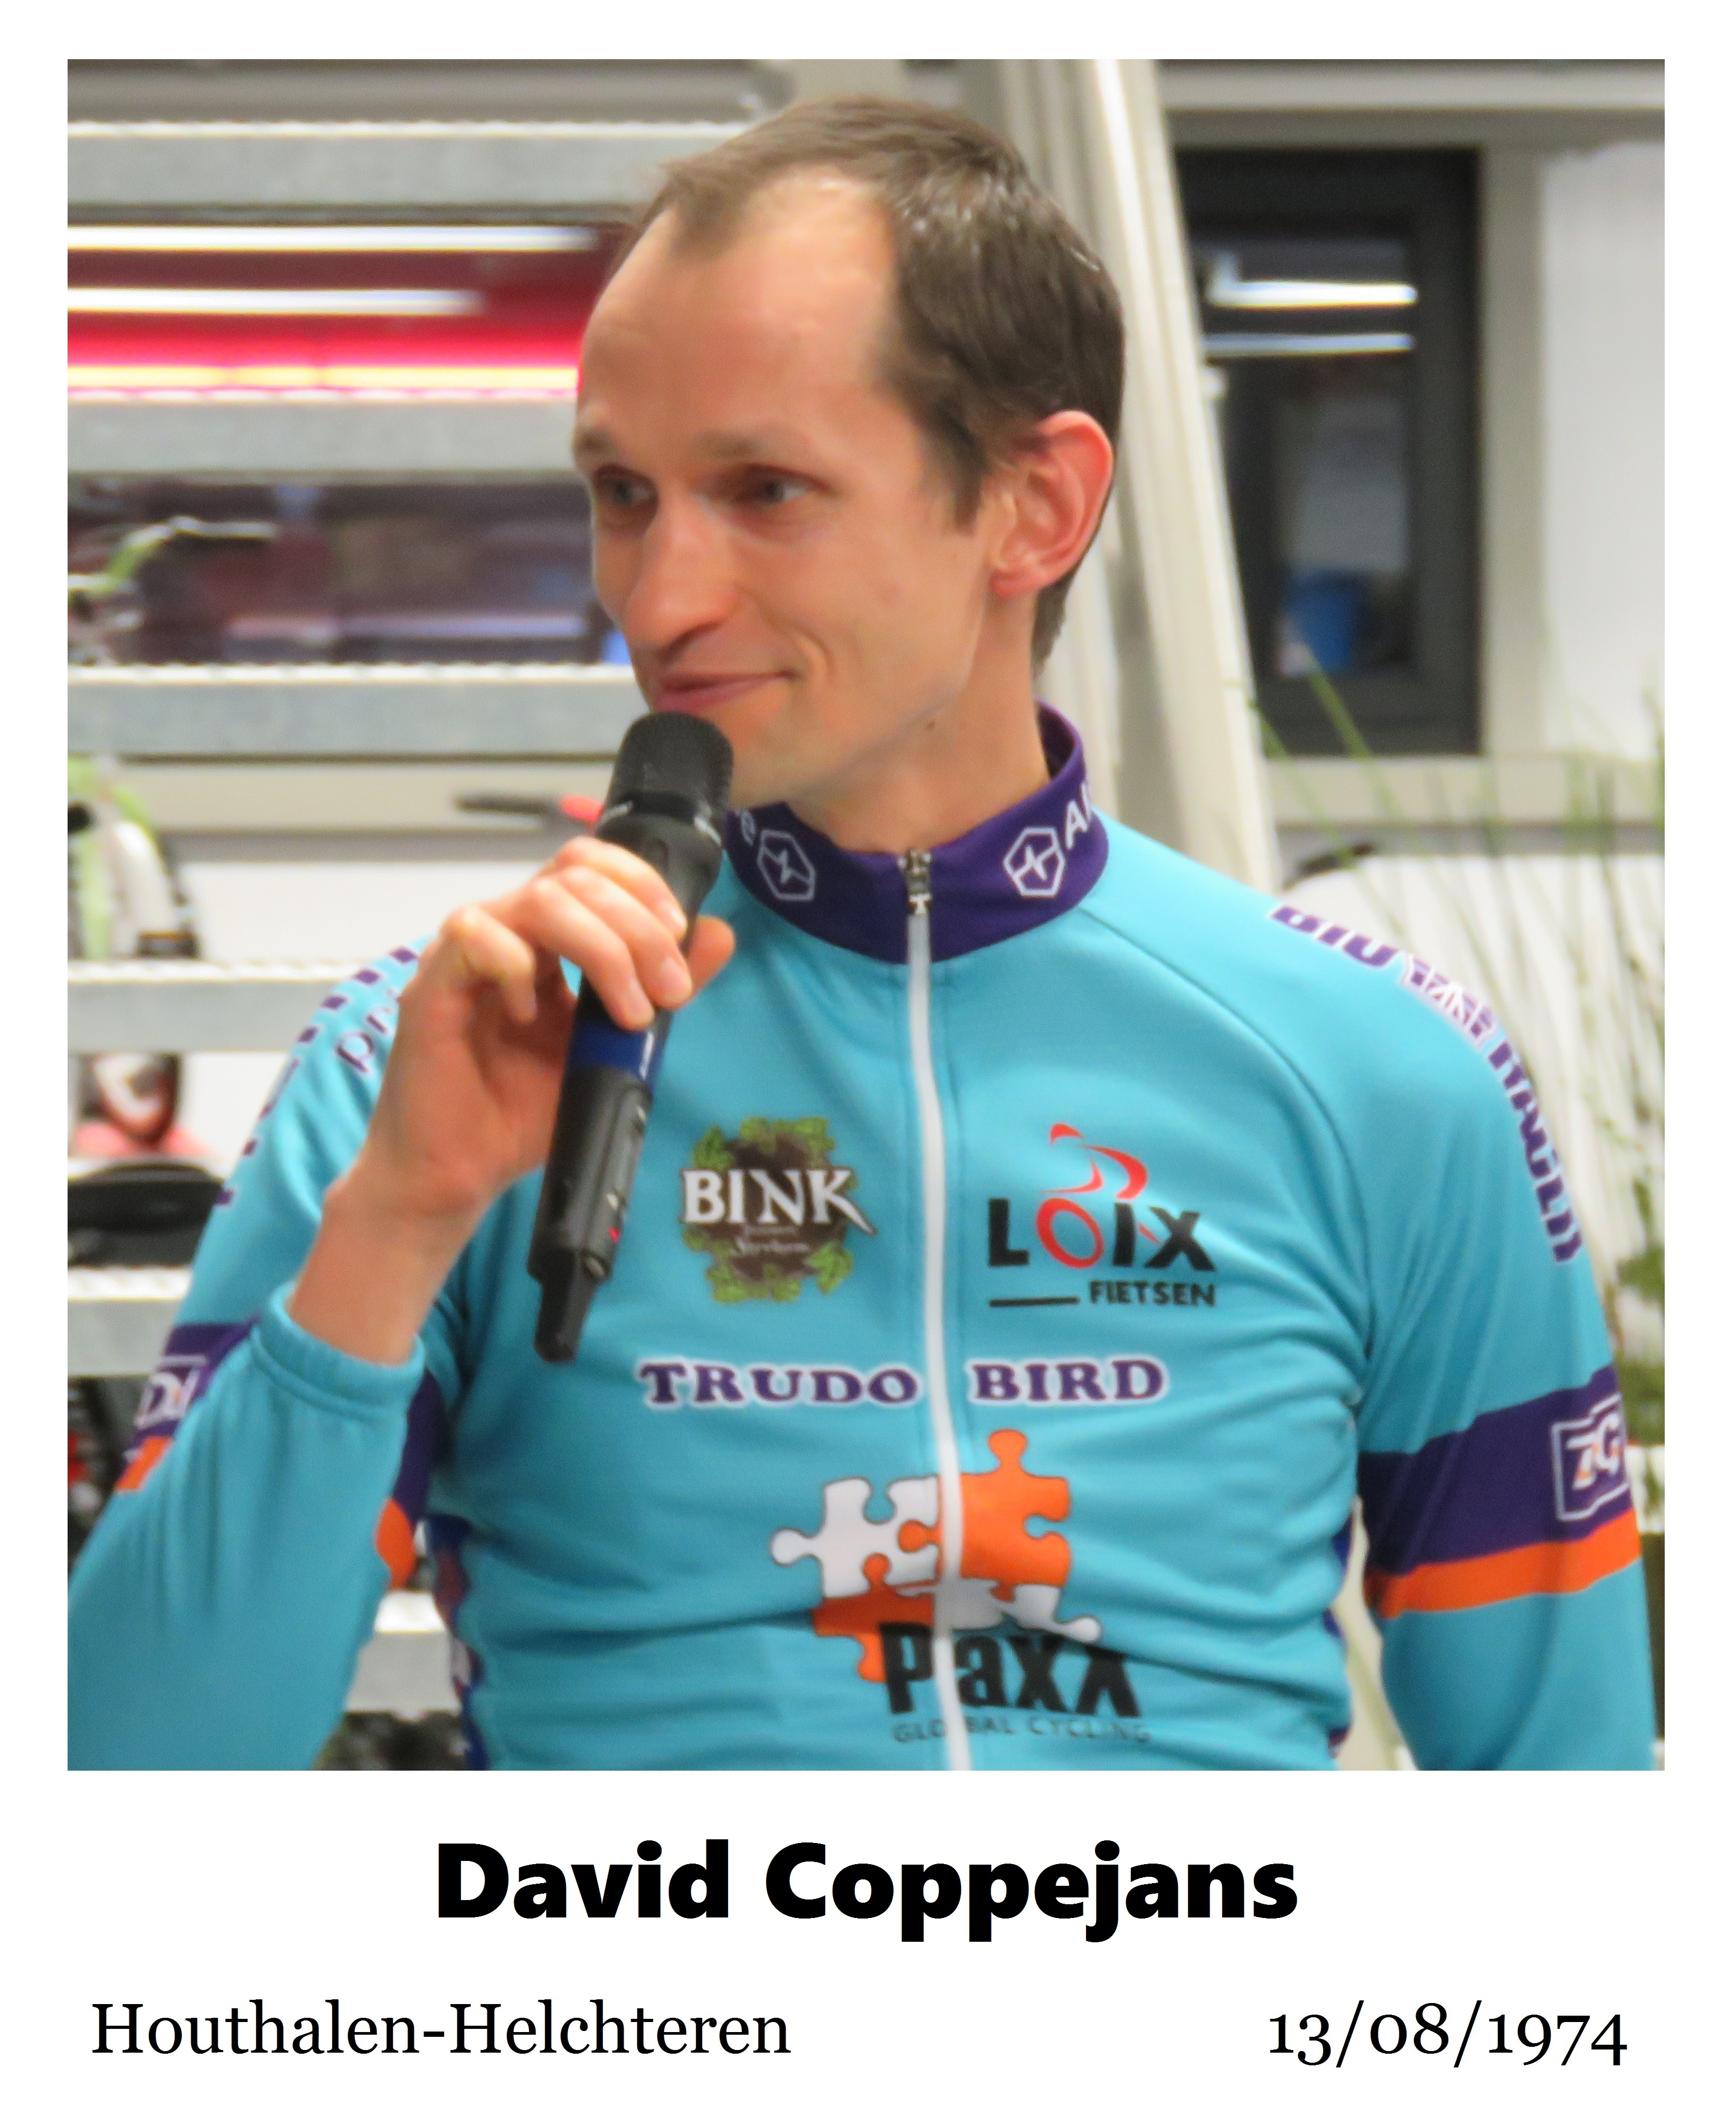 David Coppejans